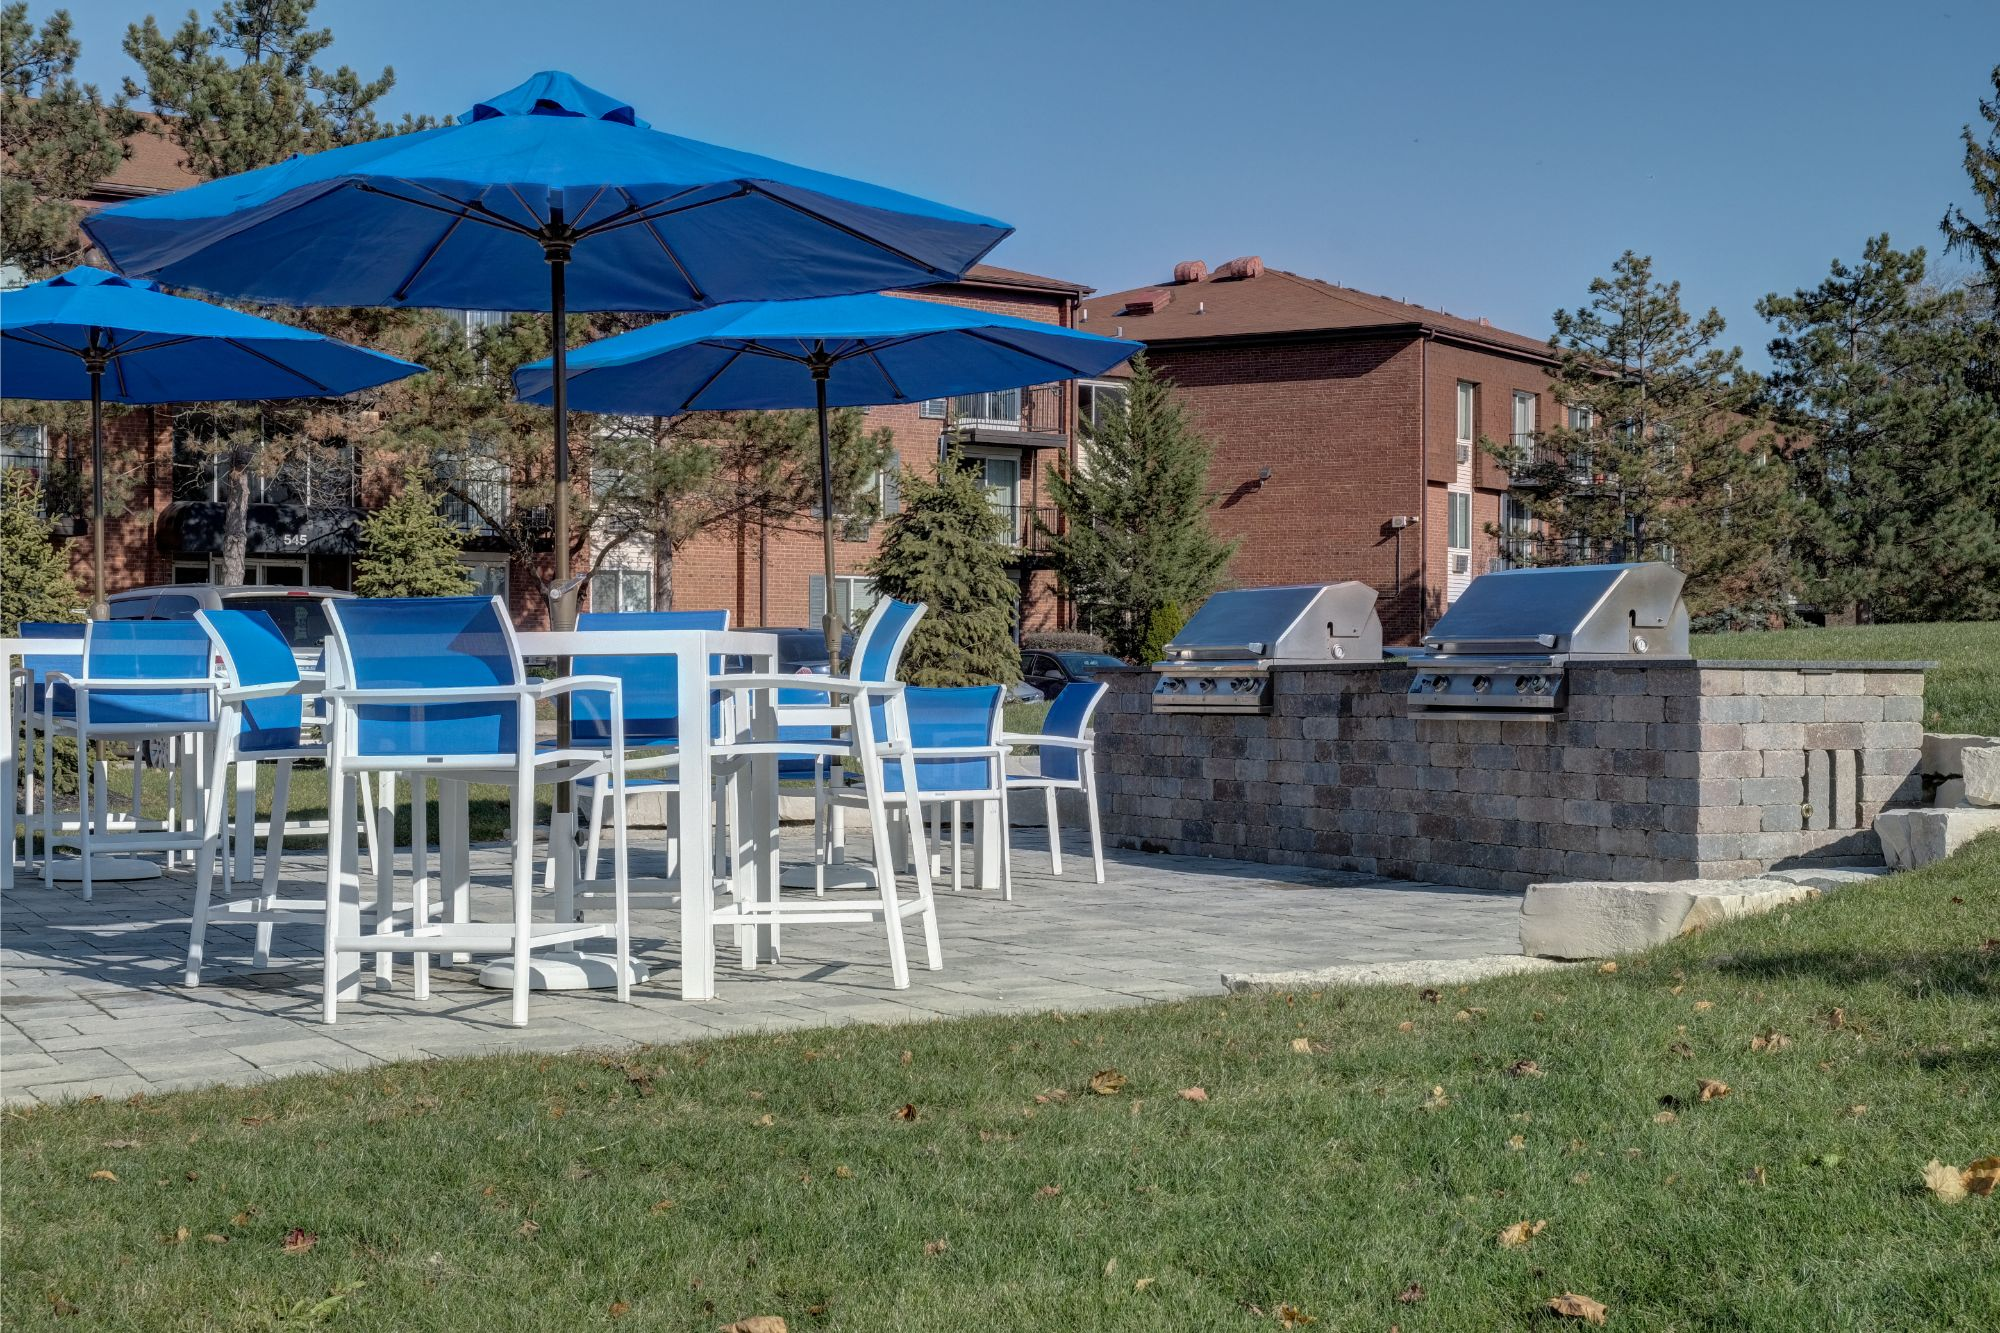 Picnic Area with BBQ Grills at Carol Stream Crossing, Carol Stream, IL